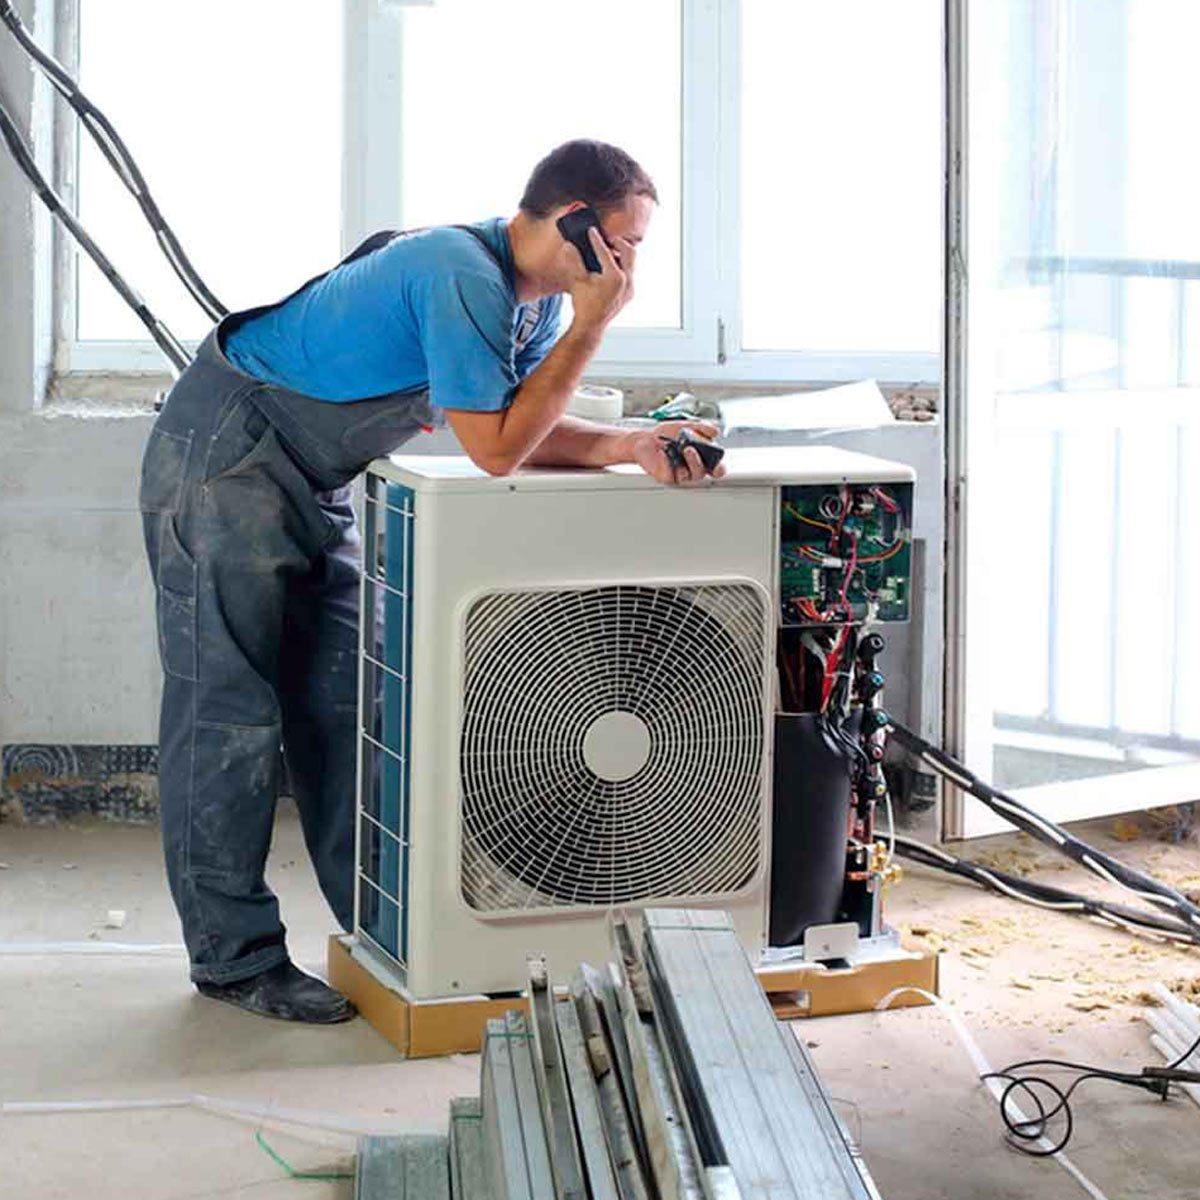 Shutterstock 159164966 air conditioner repair man hvac